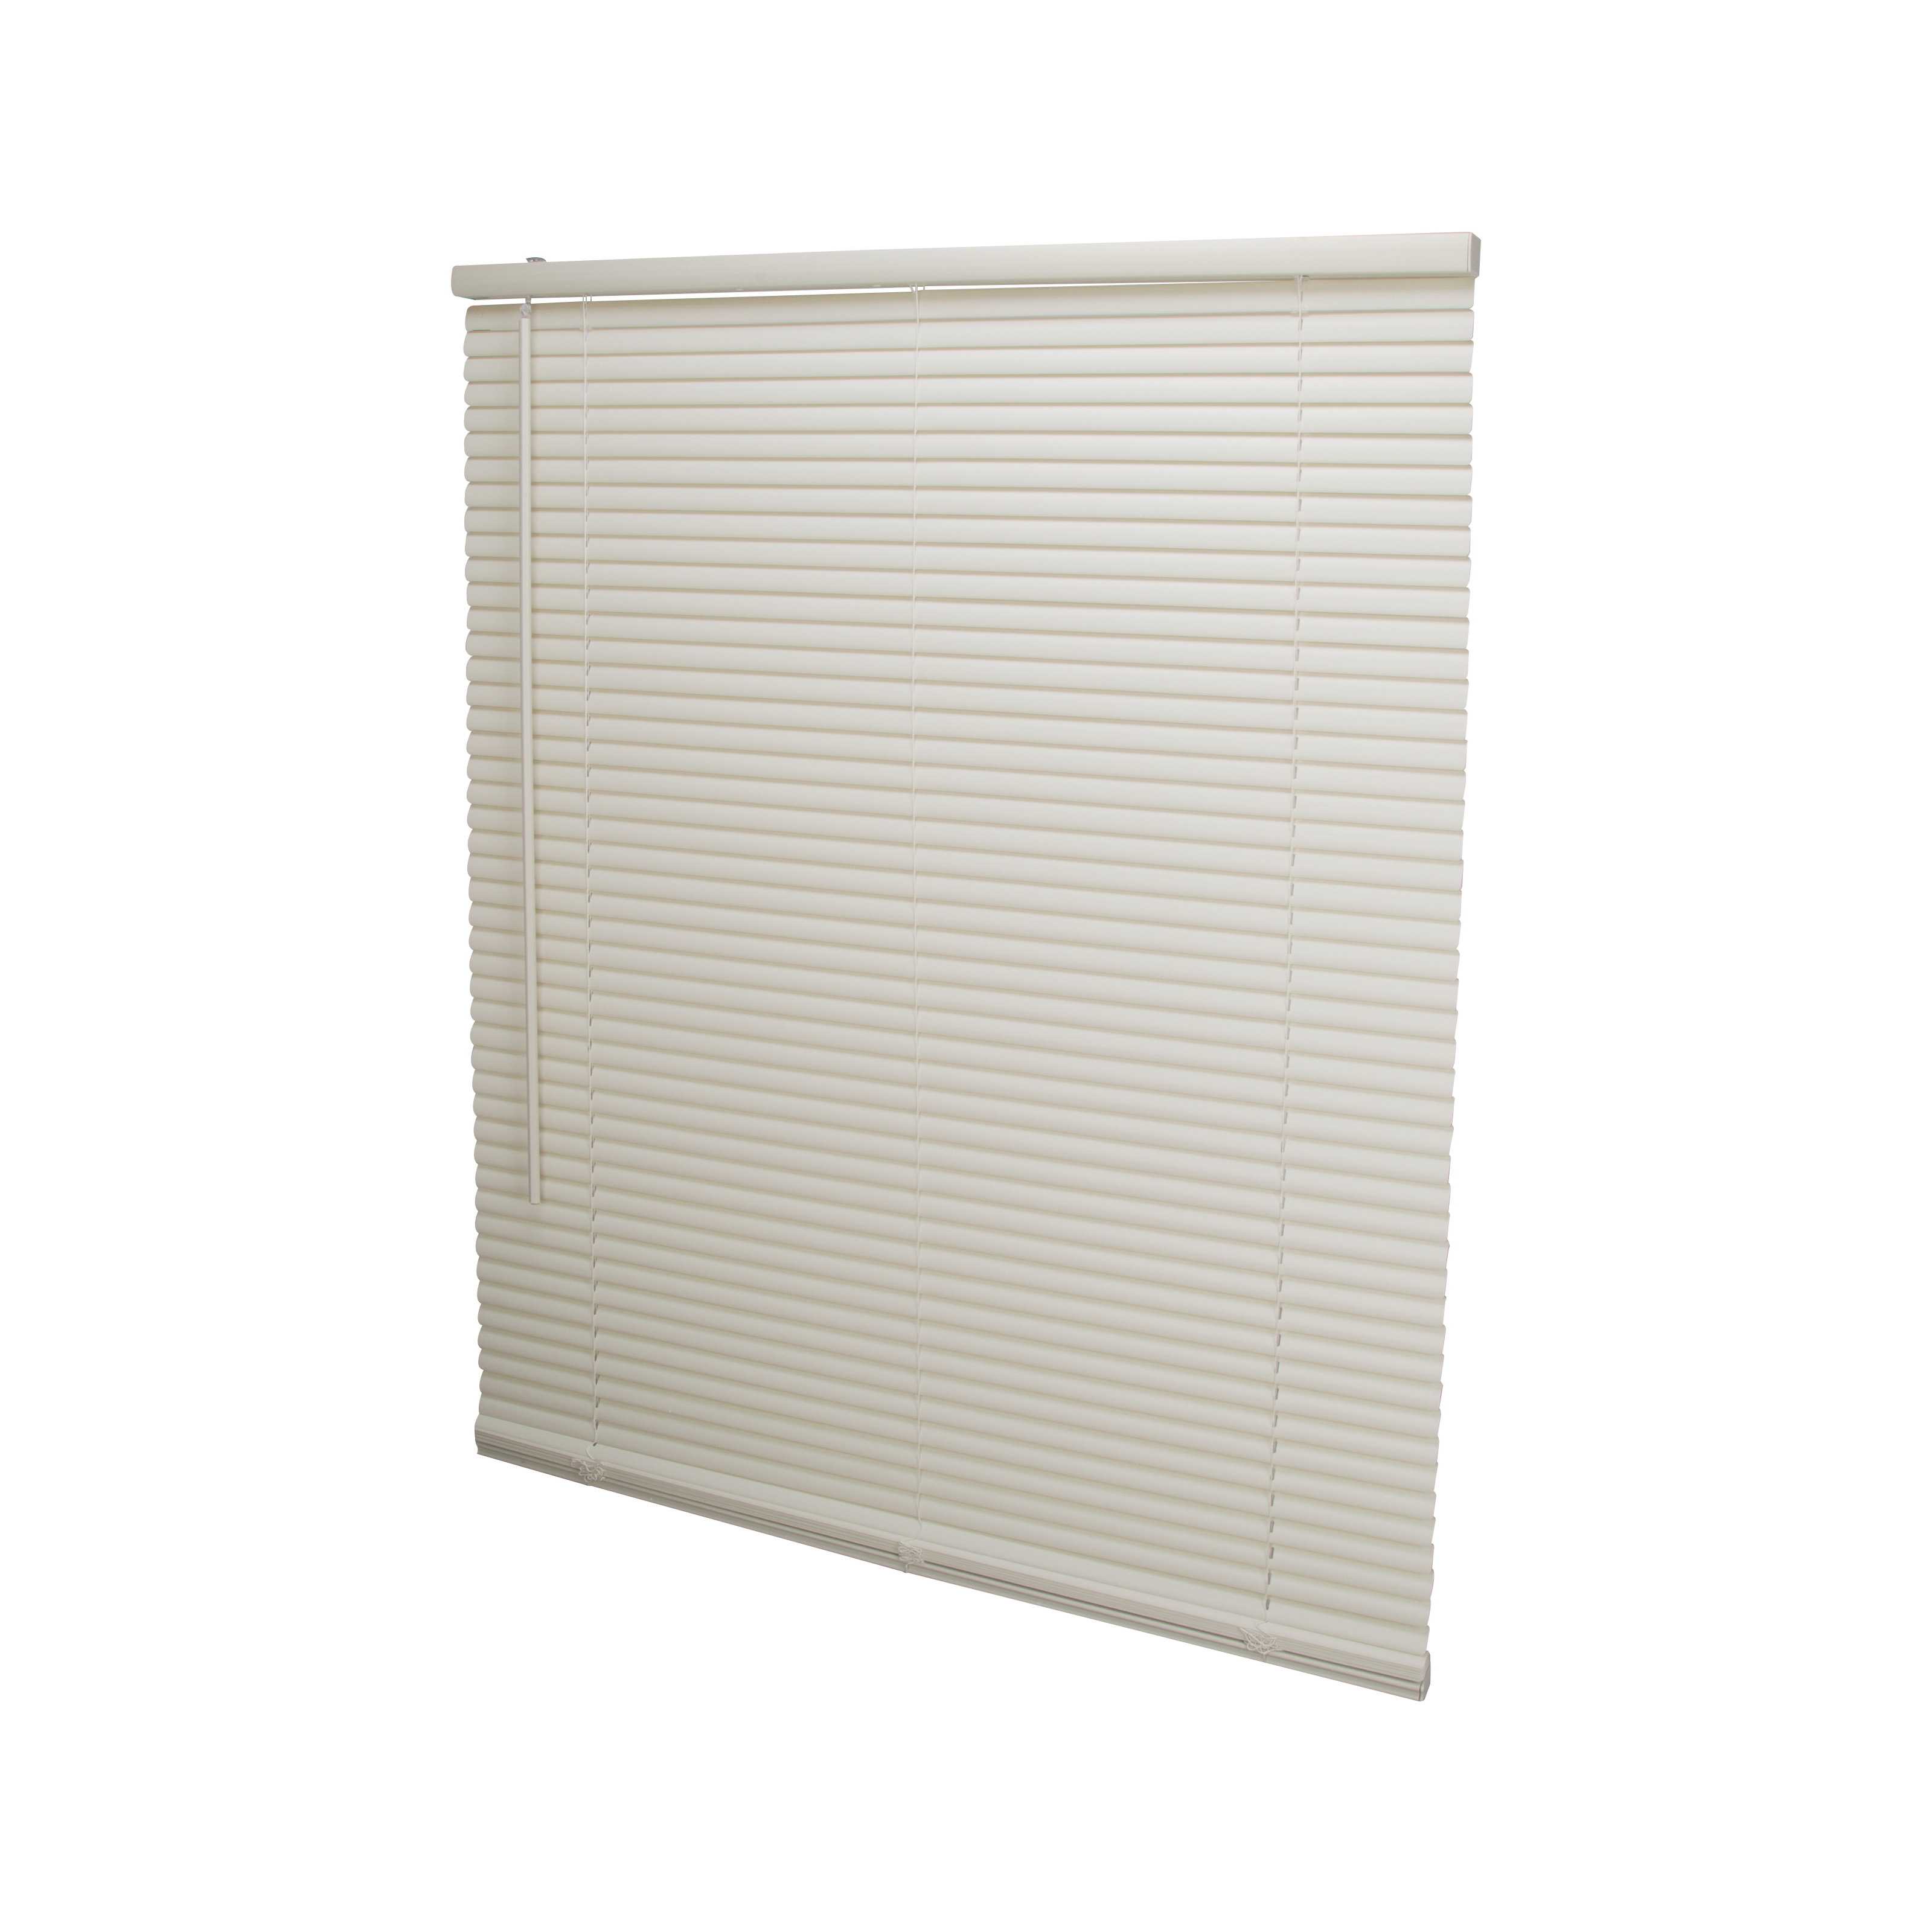 Picture of Simple Spaces PVCMB-11AA Cordless Mini Blind, 64 in L, 36 in W, Vinyl, Alabaster